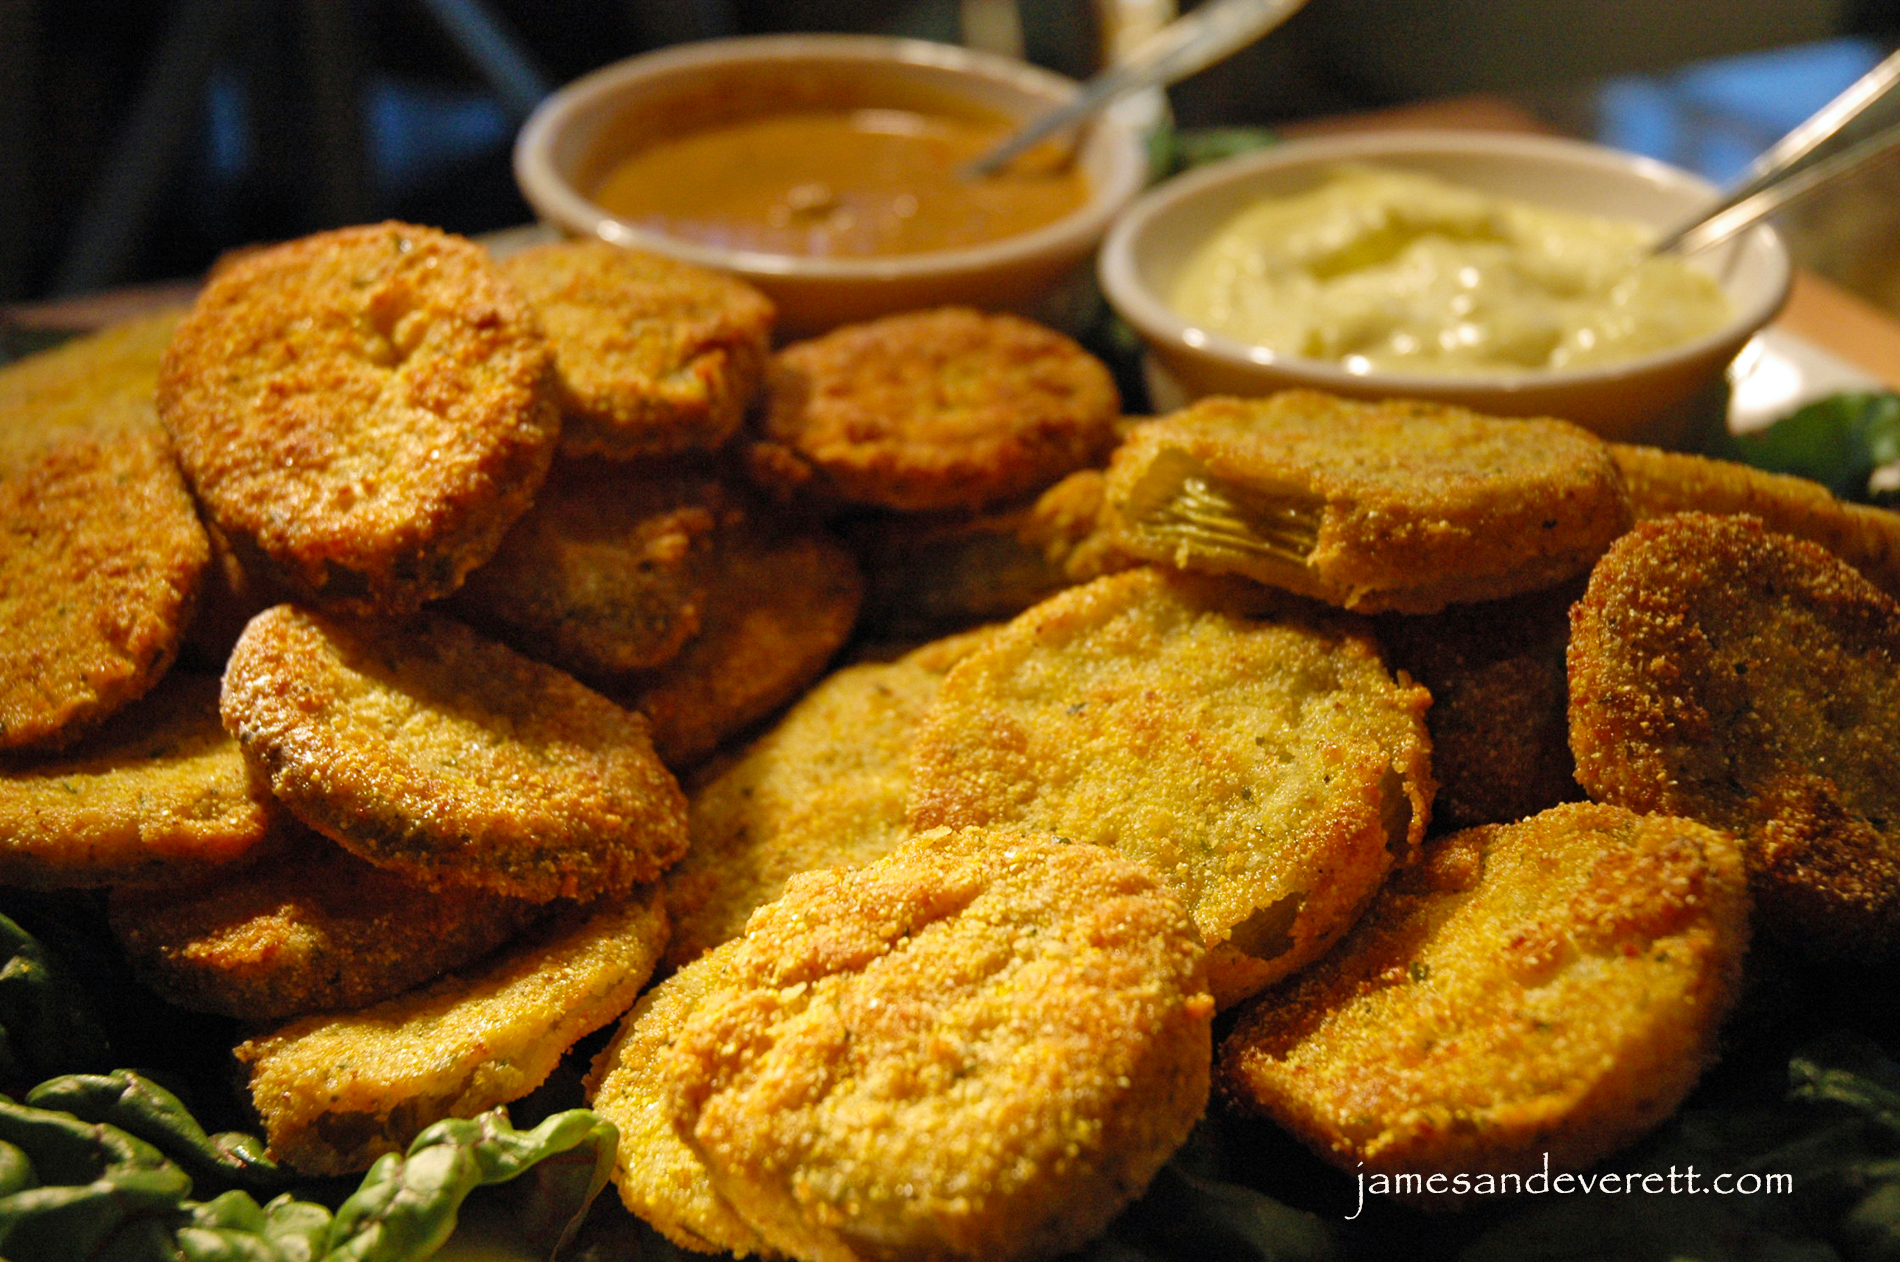 Fried green tomatoes and dill pickles with Creole mustard and garlic ...